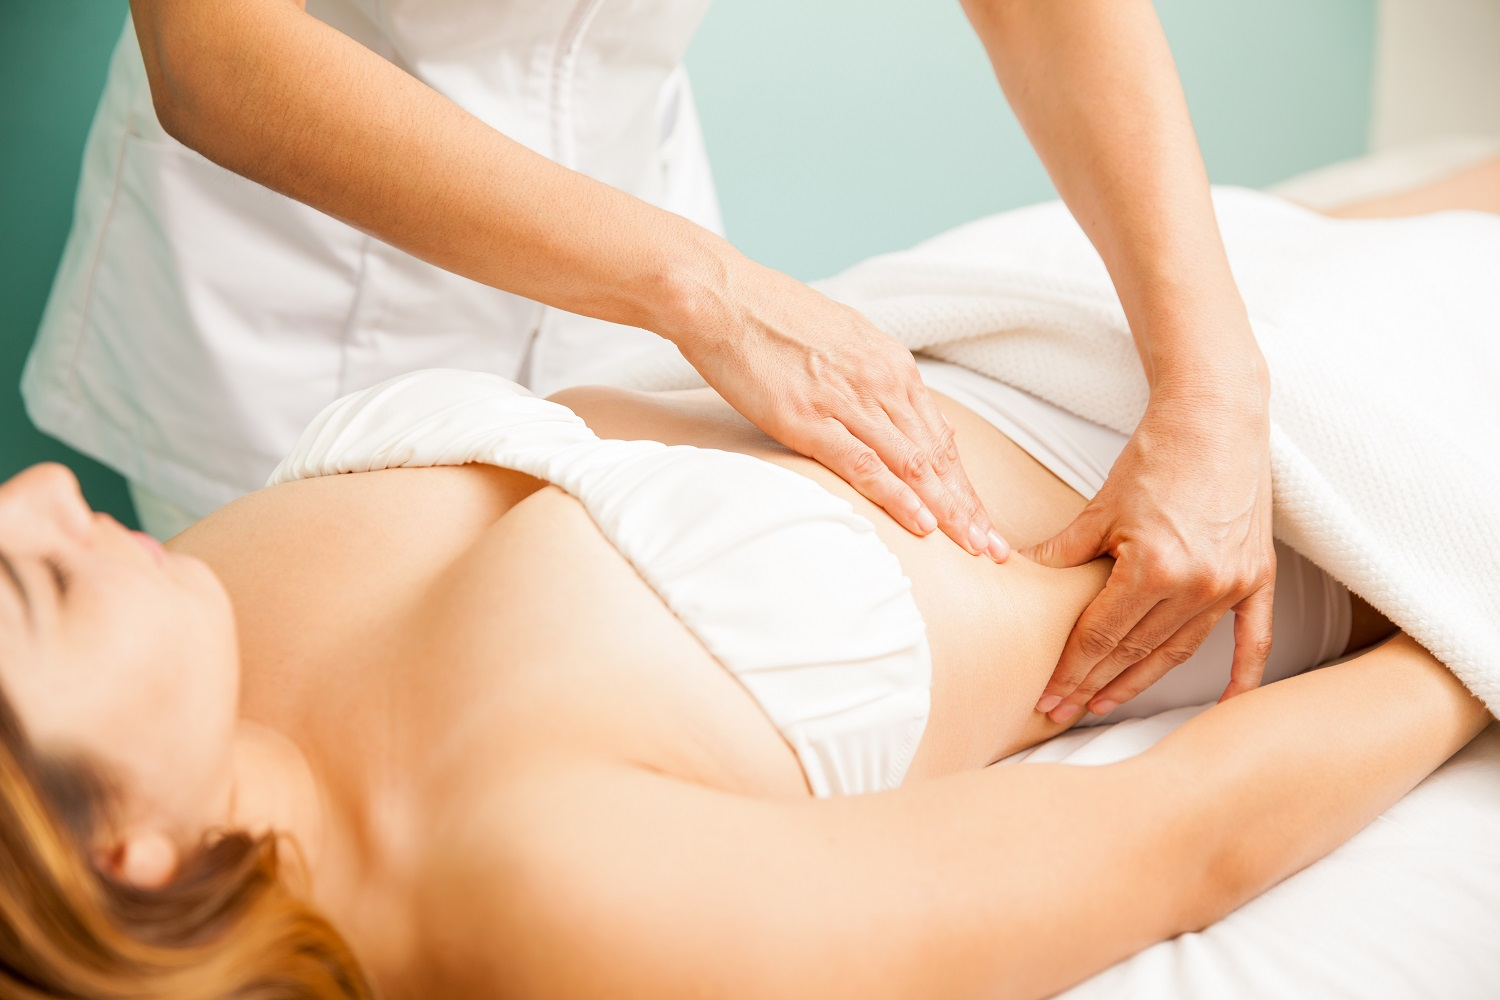 What is Lymphatic Drainage & Its Benefits?